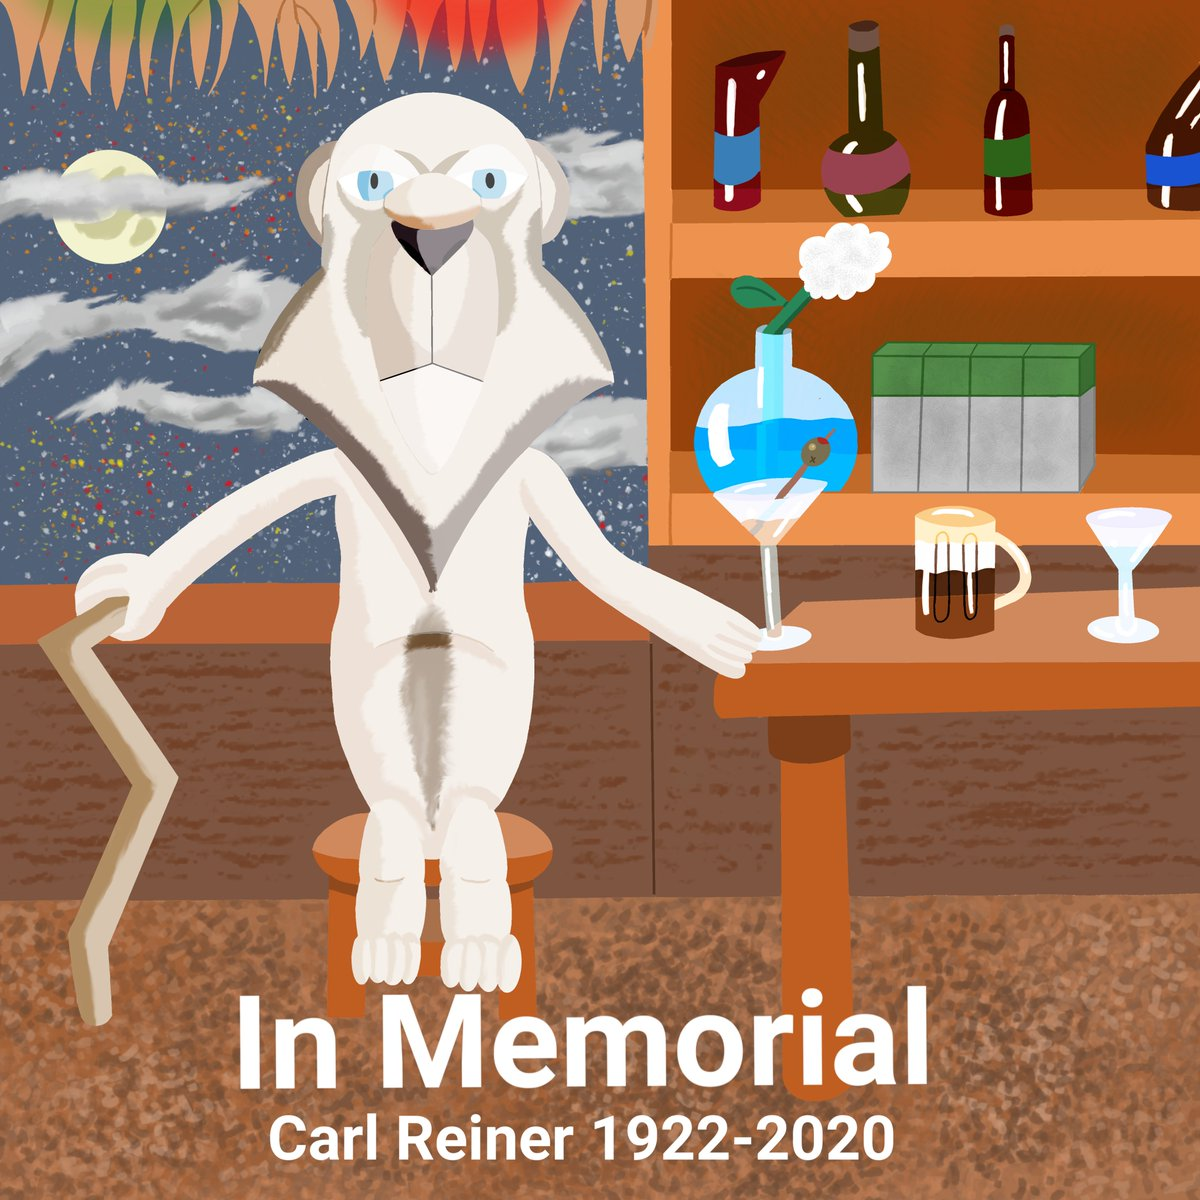 I got an anonymous request to make a tribute for the recently deceased Carl Reiner as his character Sarmoti from Father Of The Pride. #requestart #fatherofthepride #carlreiner https://t.co/Zzk0IeqVEM